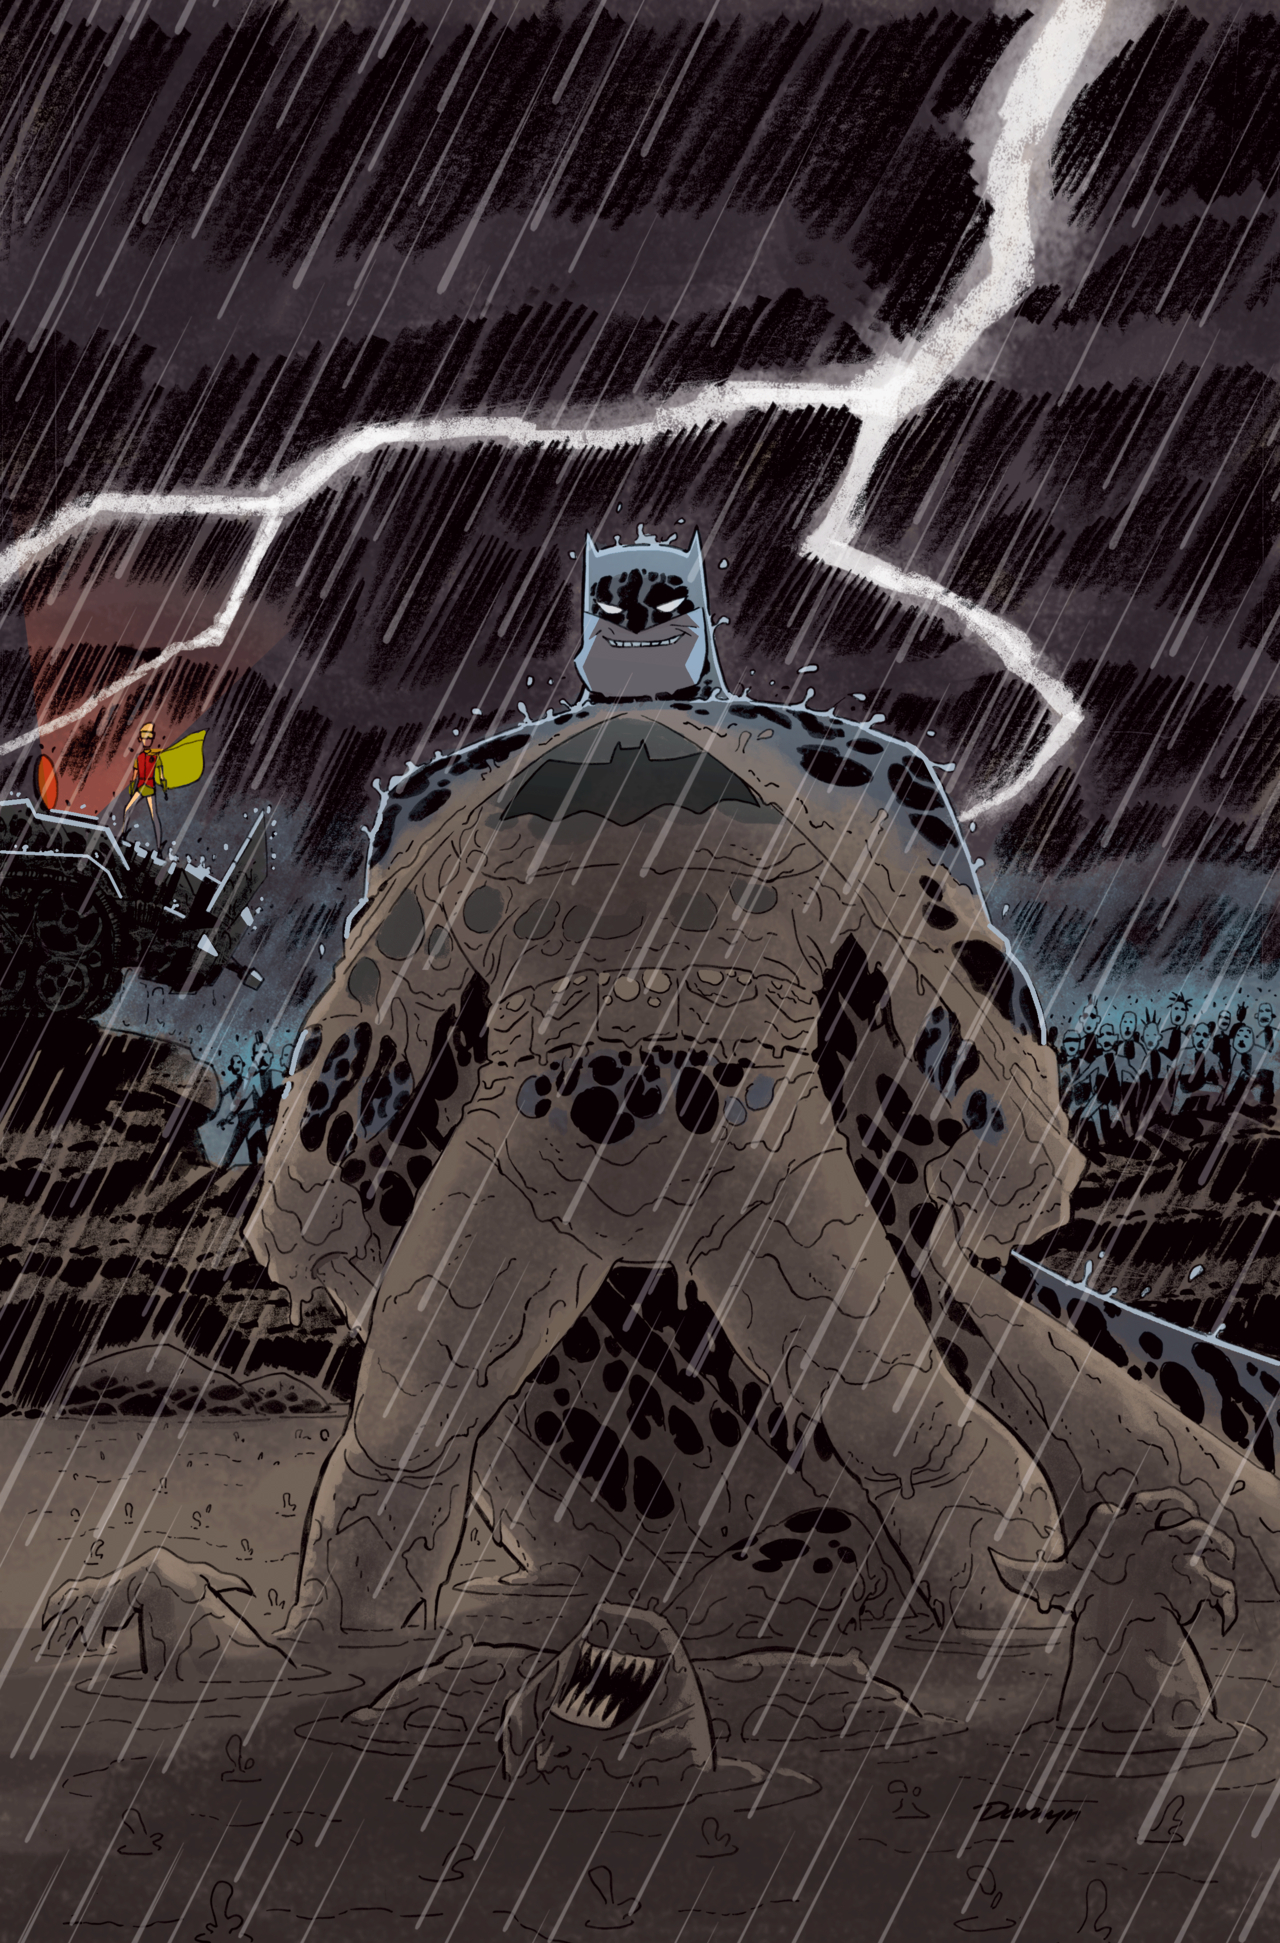 https://vignette.wikia.nocookie.net/batman/images/0/05/The_Dark_Knight_III_The_Master_Race_Vol_1-1_Cover-35_Teaser.jpg/revision/latest?cb=20170905040418